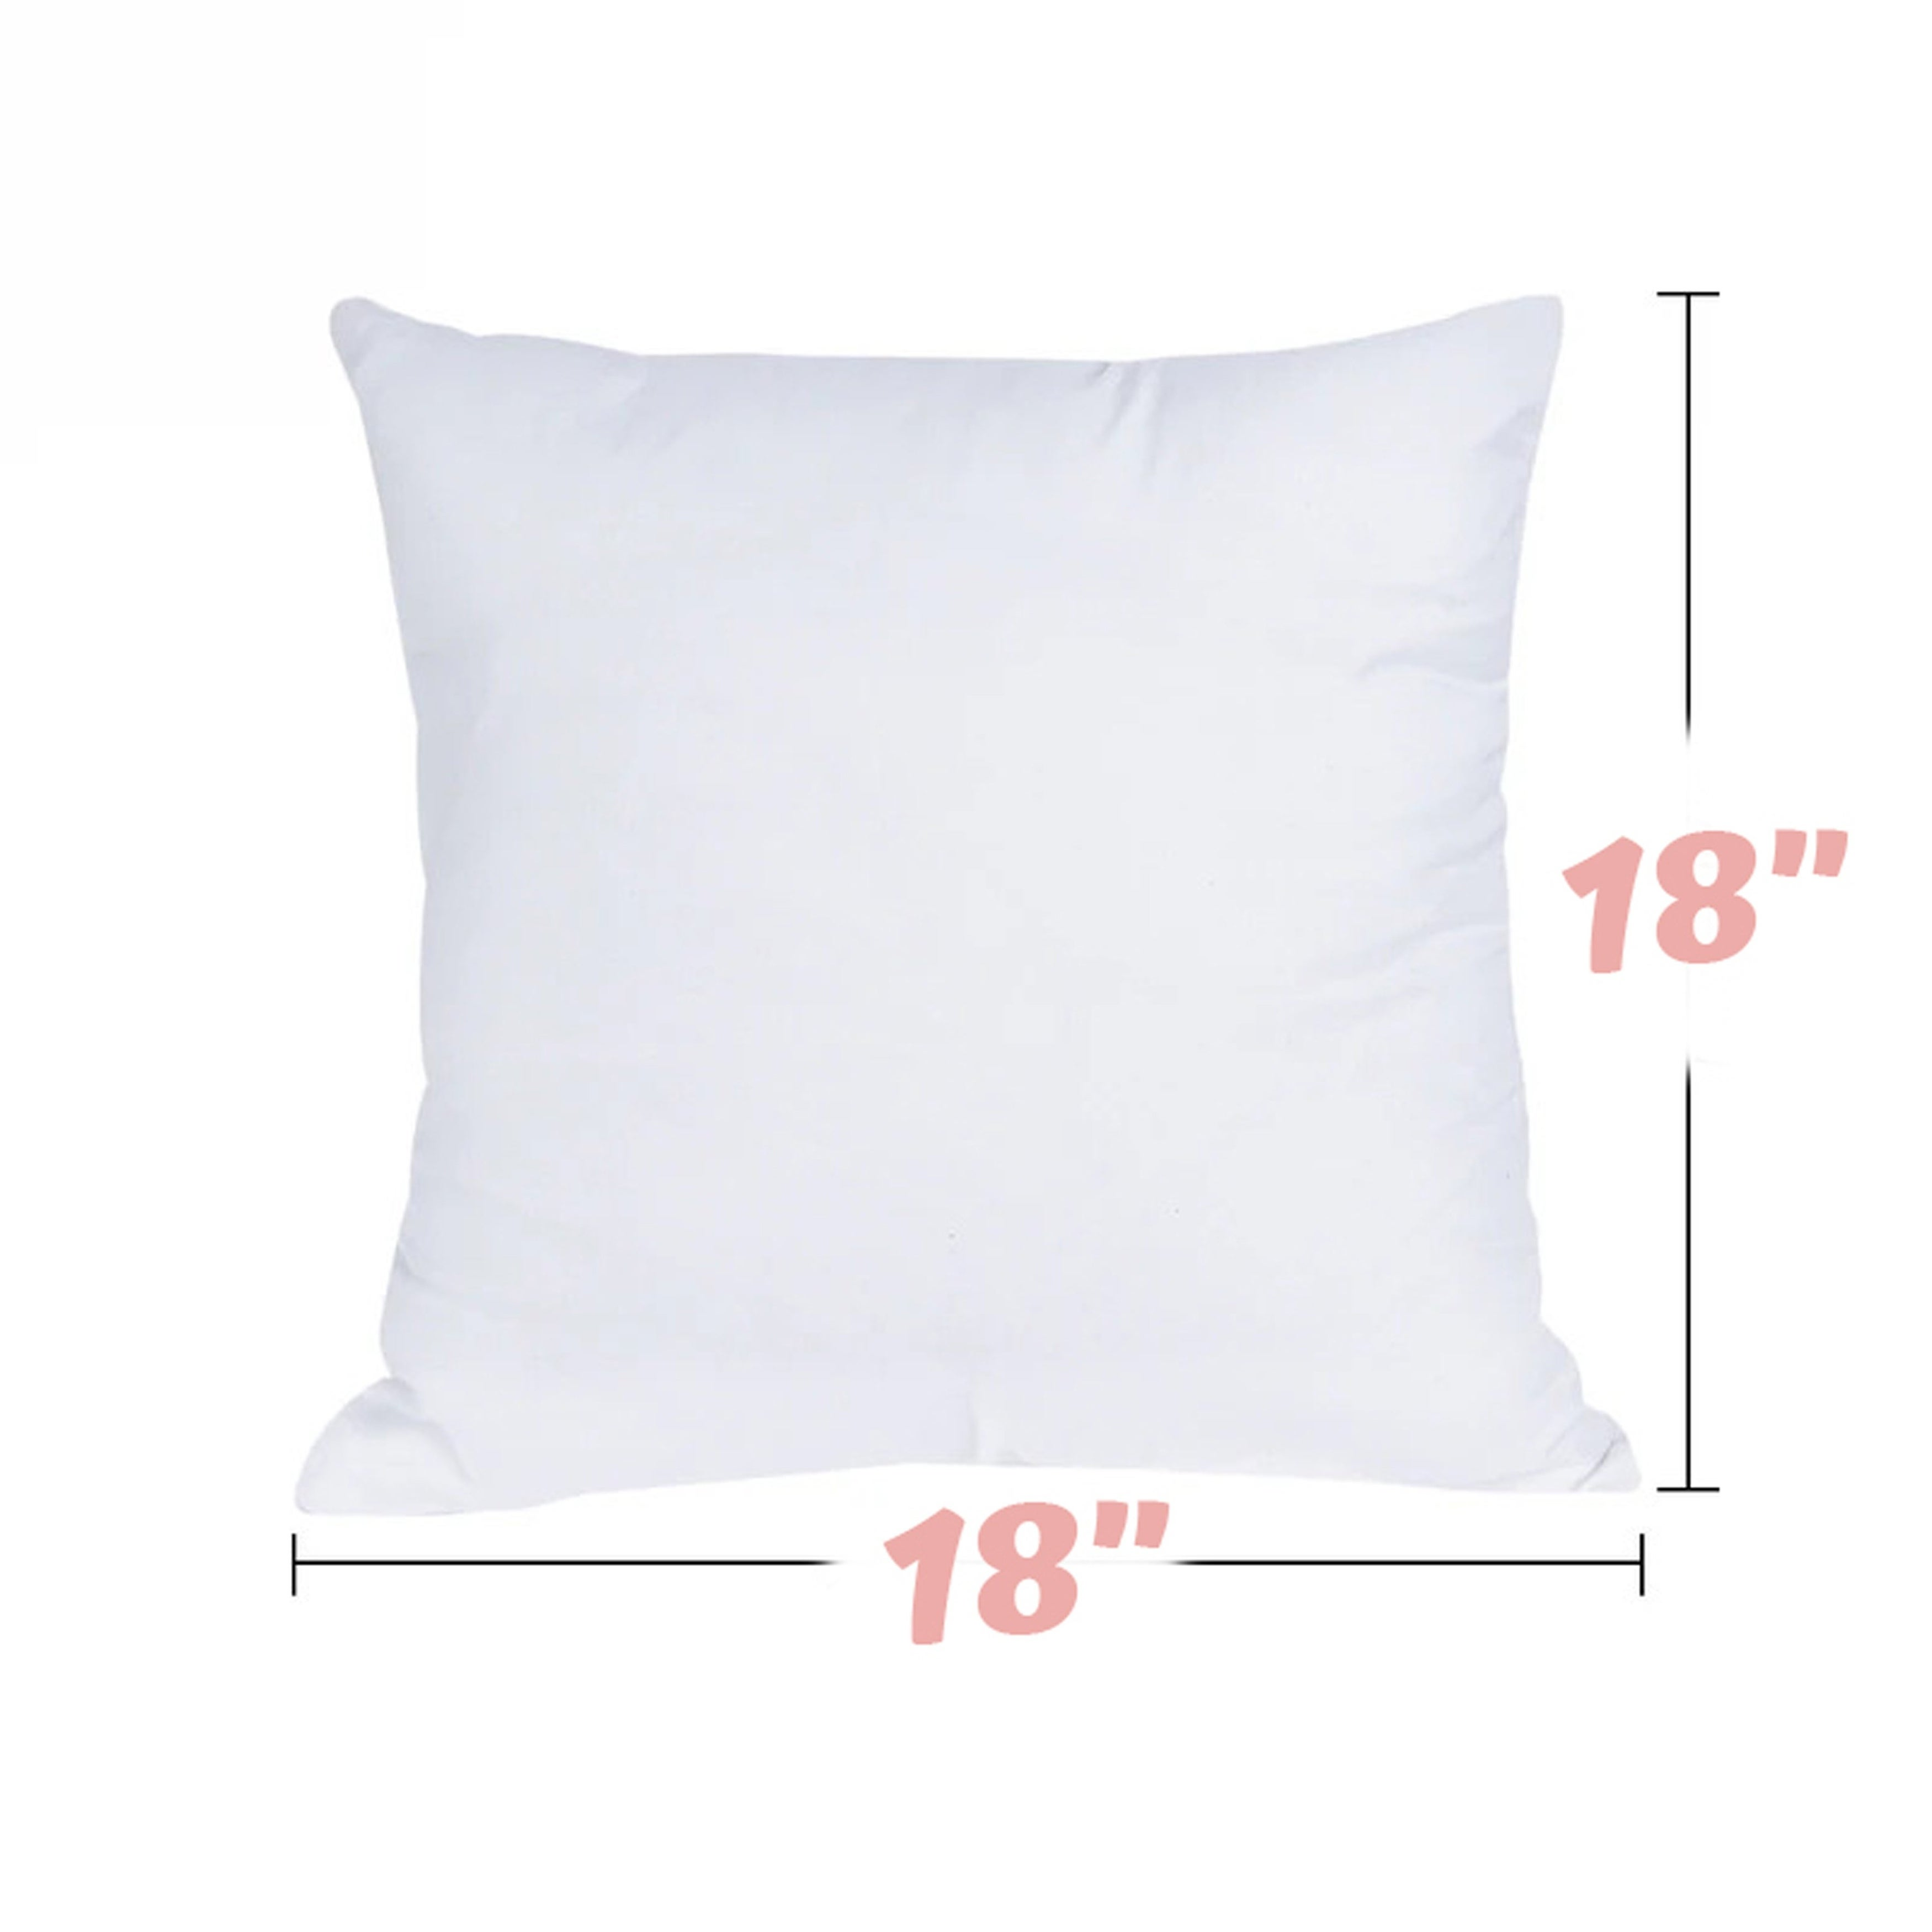 Set Of 2 Pillow Cases Her Beast His Beauty Couple Pillow Covers On Sale Overstock 19848739